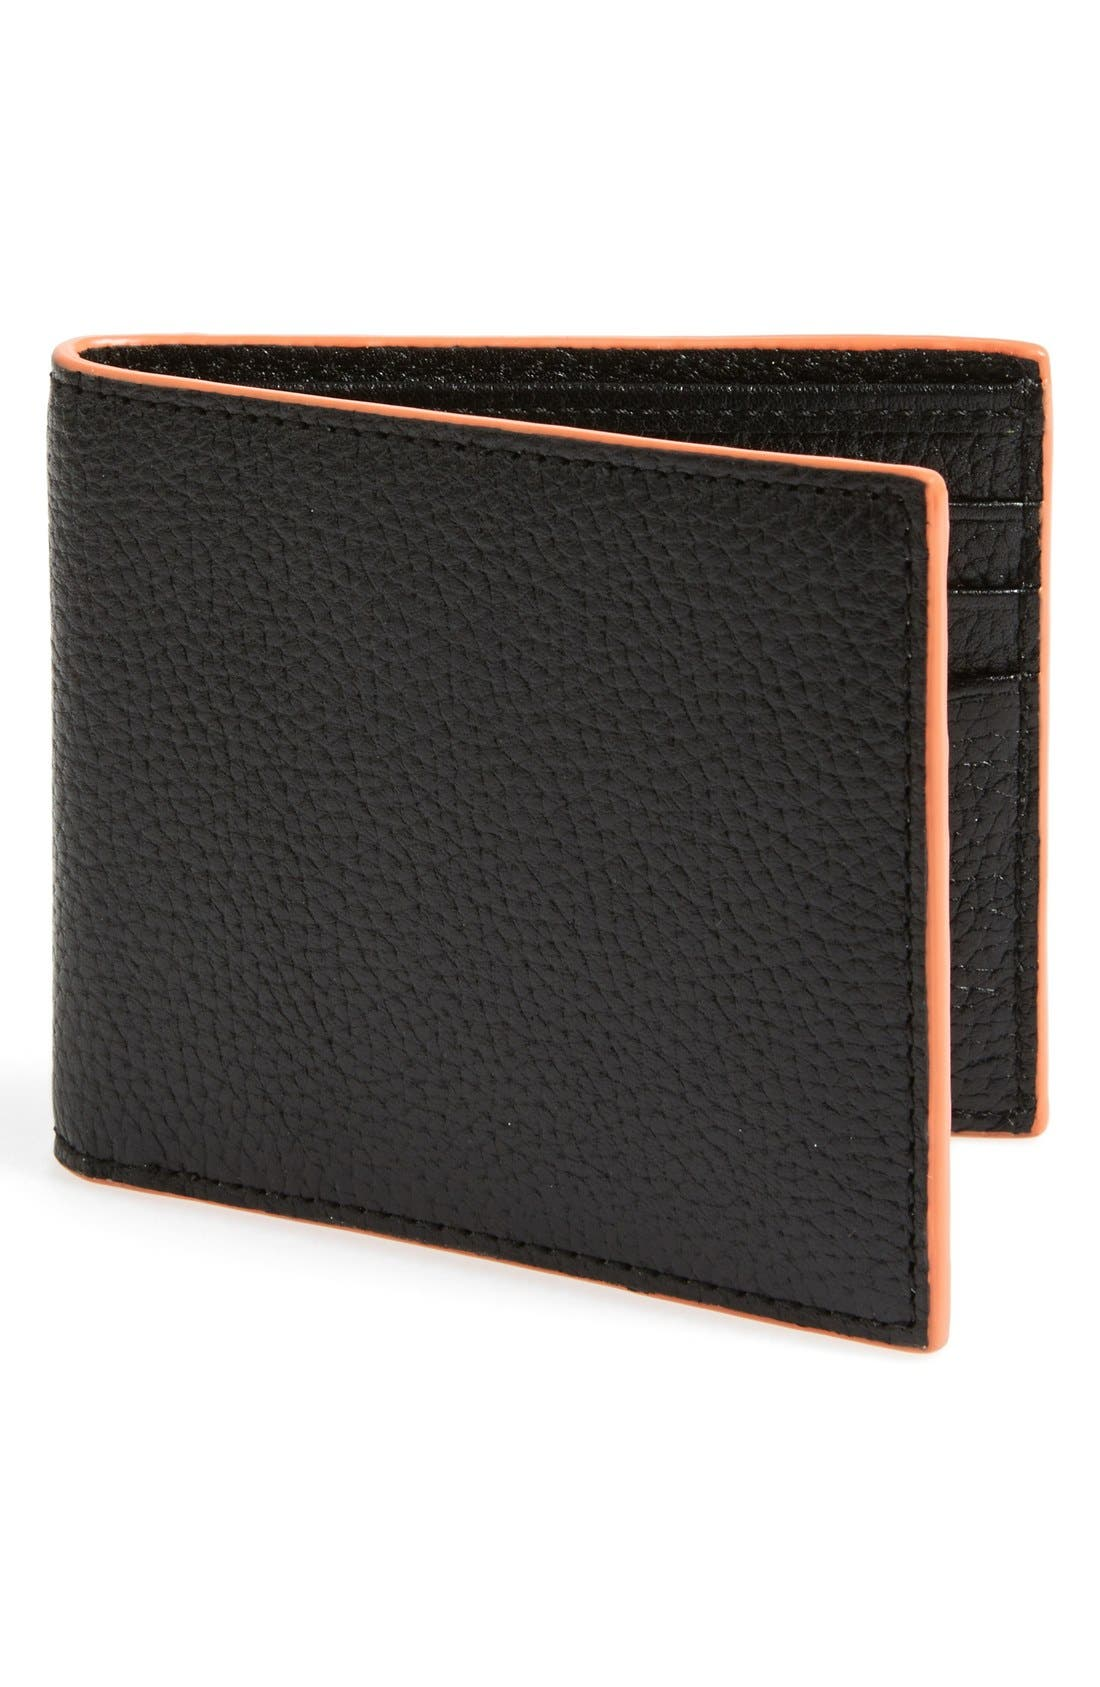 Alternate Image 1 Selected - Jack Spade 'Mason' Leather Wallet